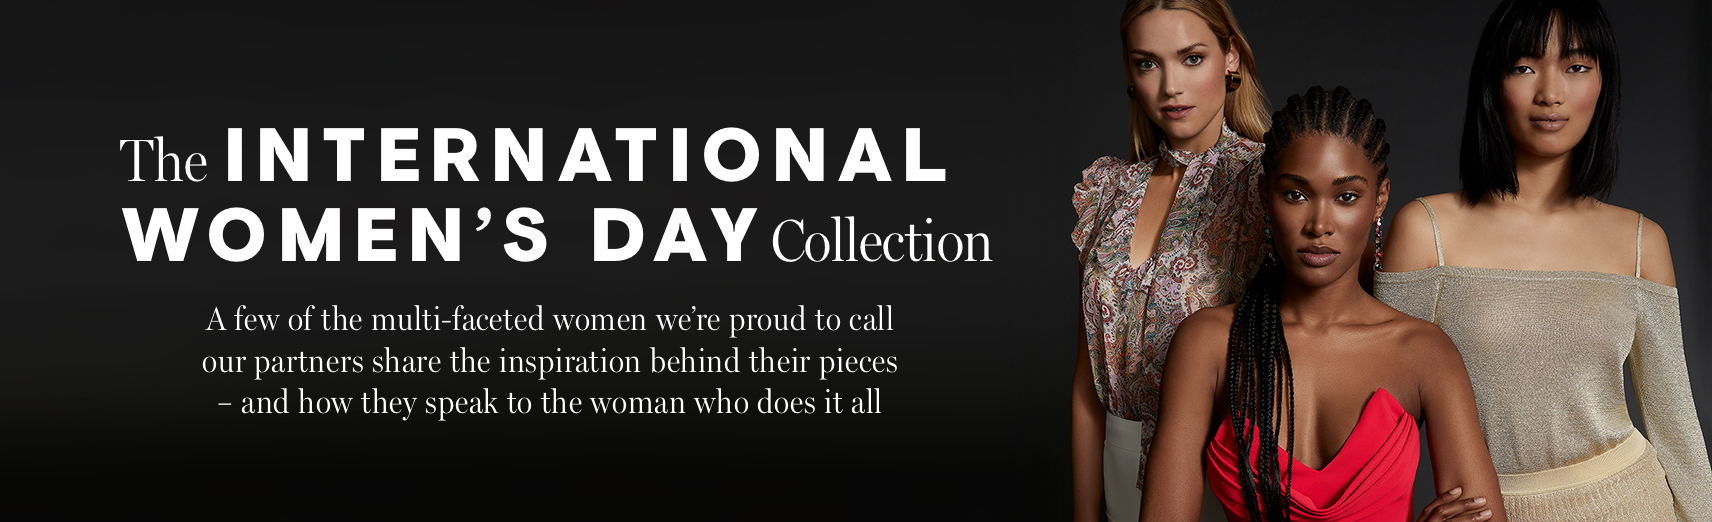 International Women's Day The Exclusive Collection